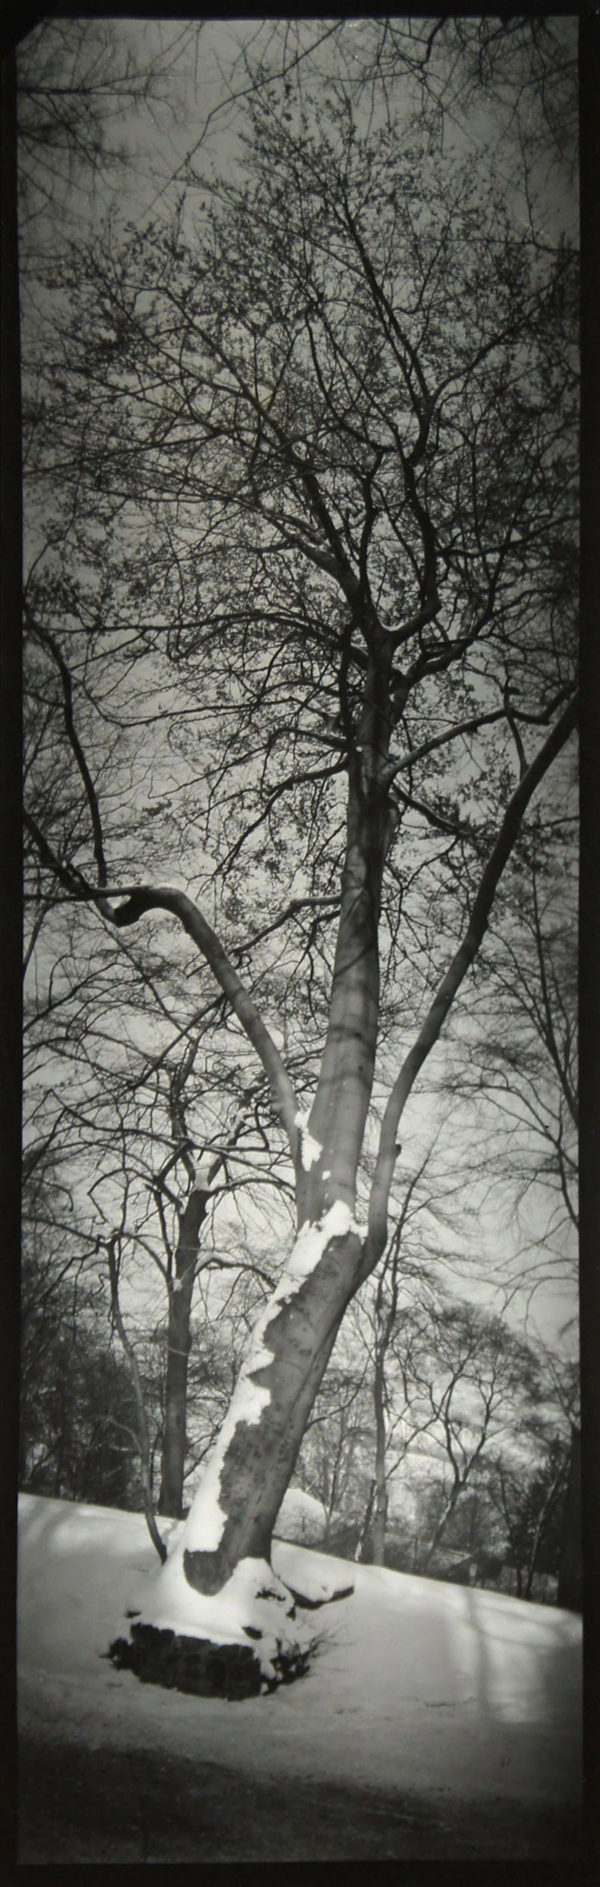 Panorama of Tree, n.d., gelatin silver print, 401 x 149 mm, ©Josef Sudek